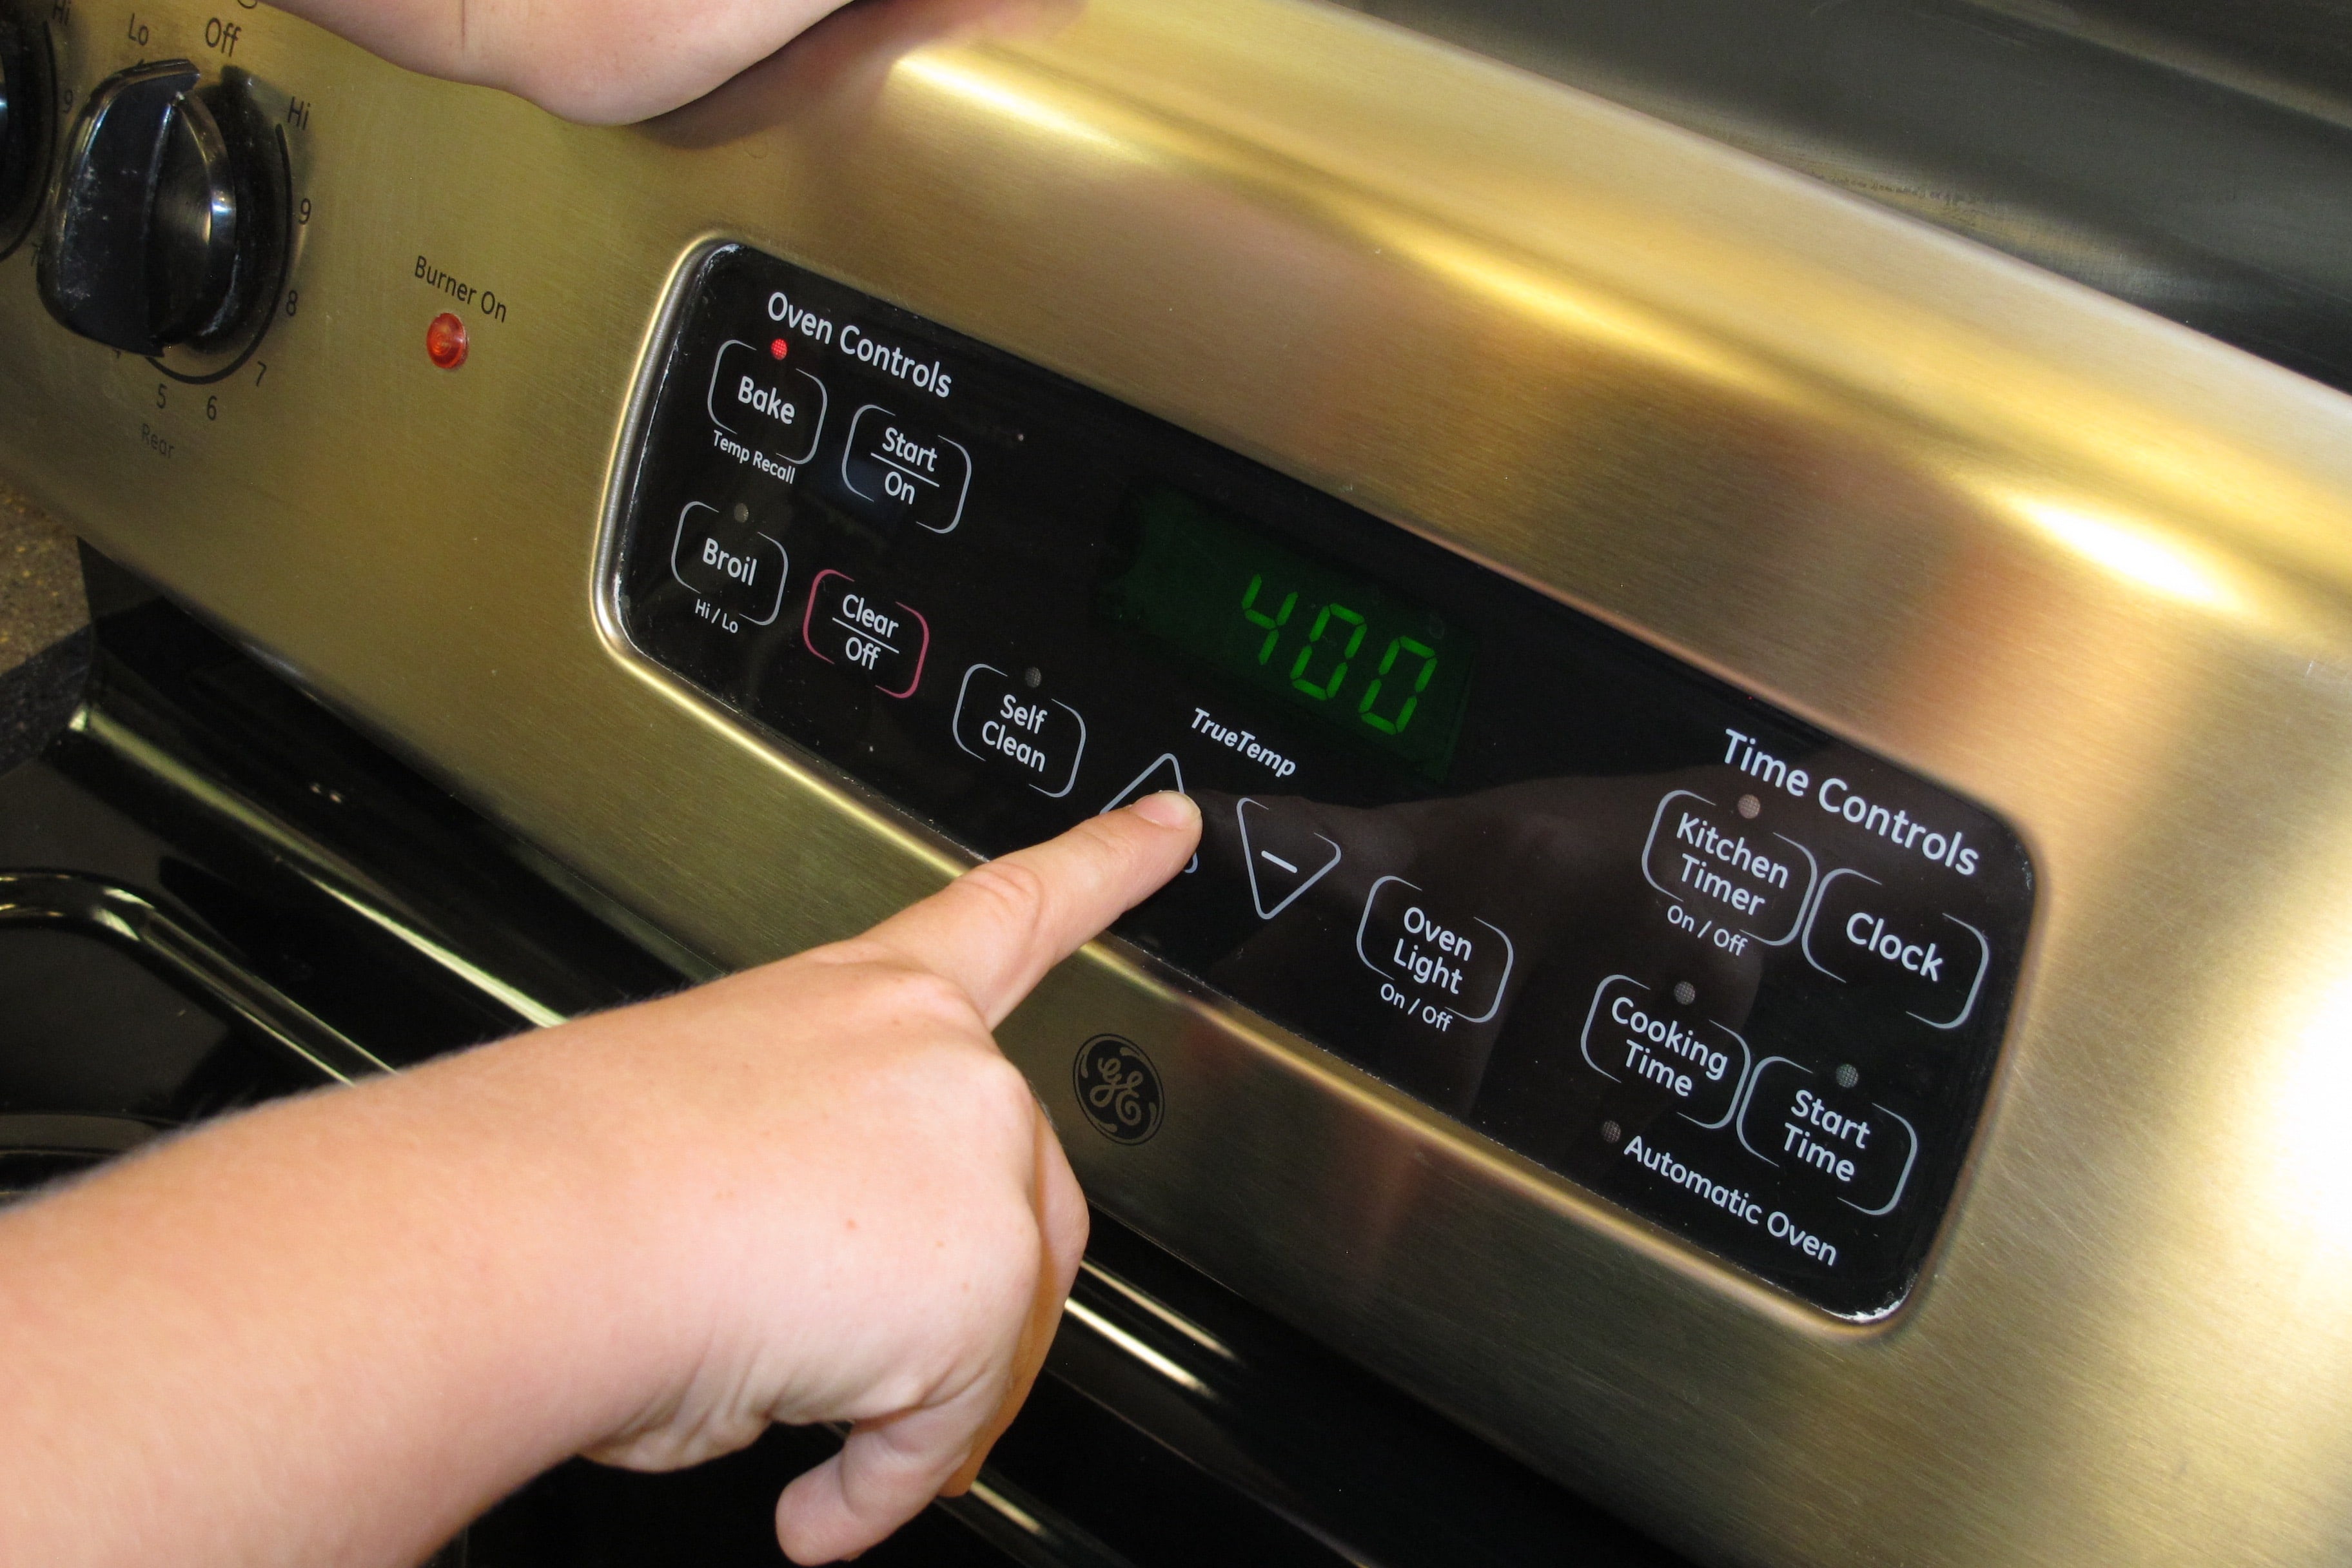 Preheat the oven to 400°F.